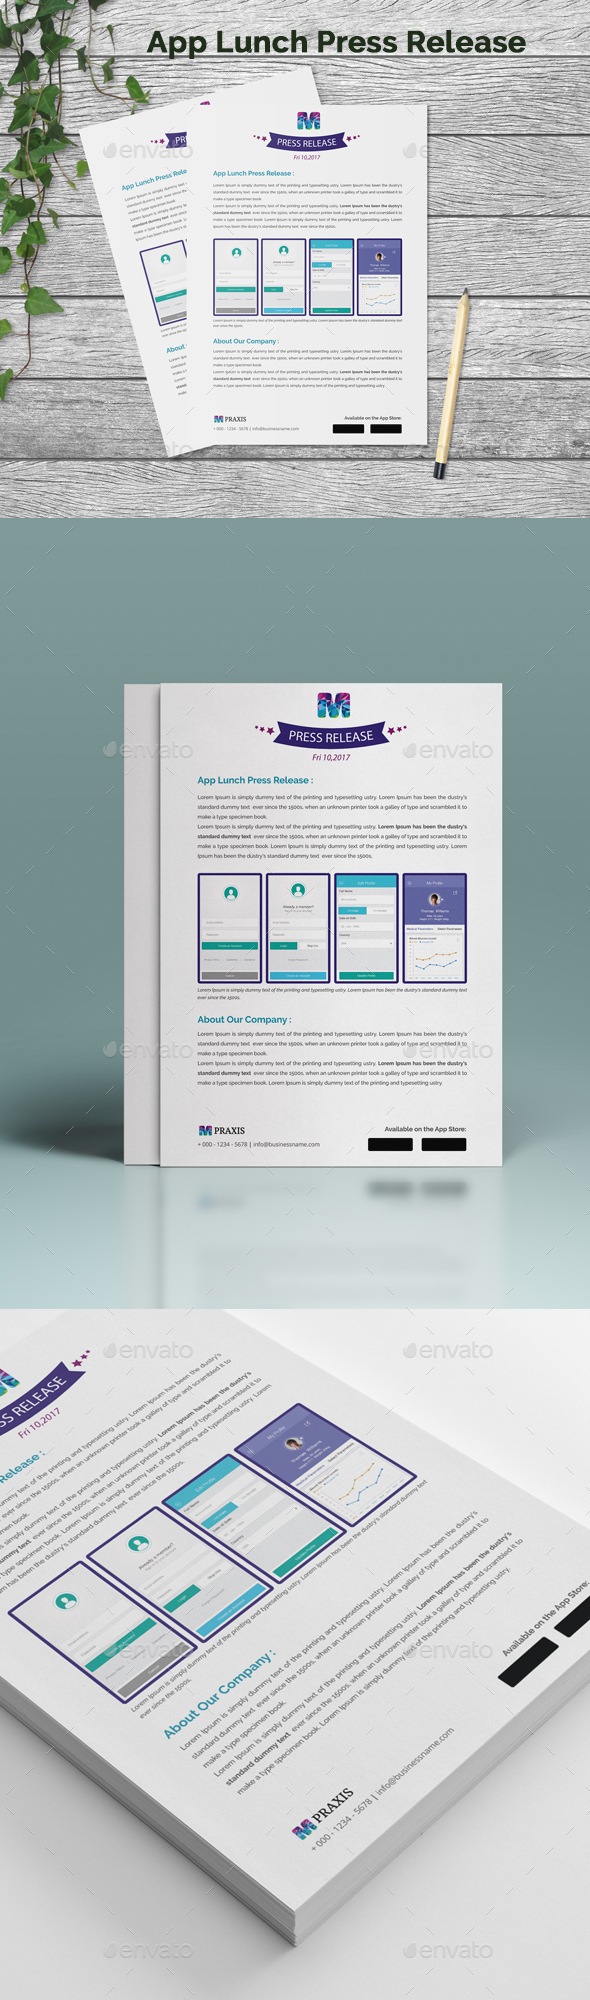 Mobile App Launch Press Release Template   Stationery printing  Ai     App Lunch Press Release Design Template   Stationery Print Template Vector  EPS  AI Illustrator